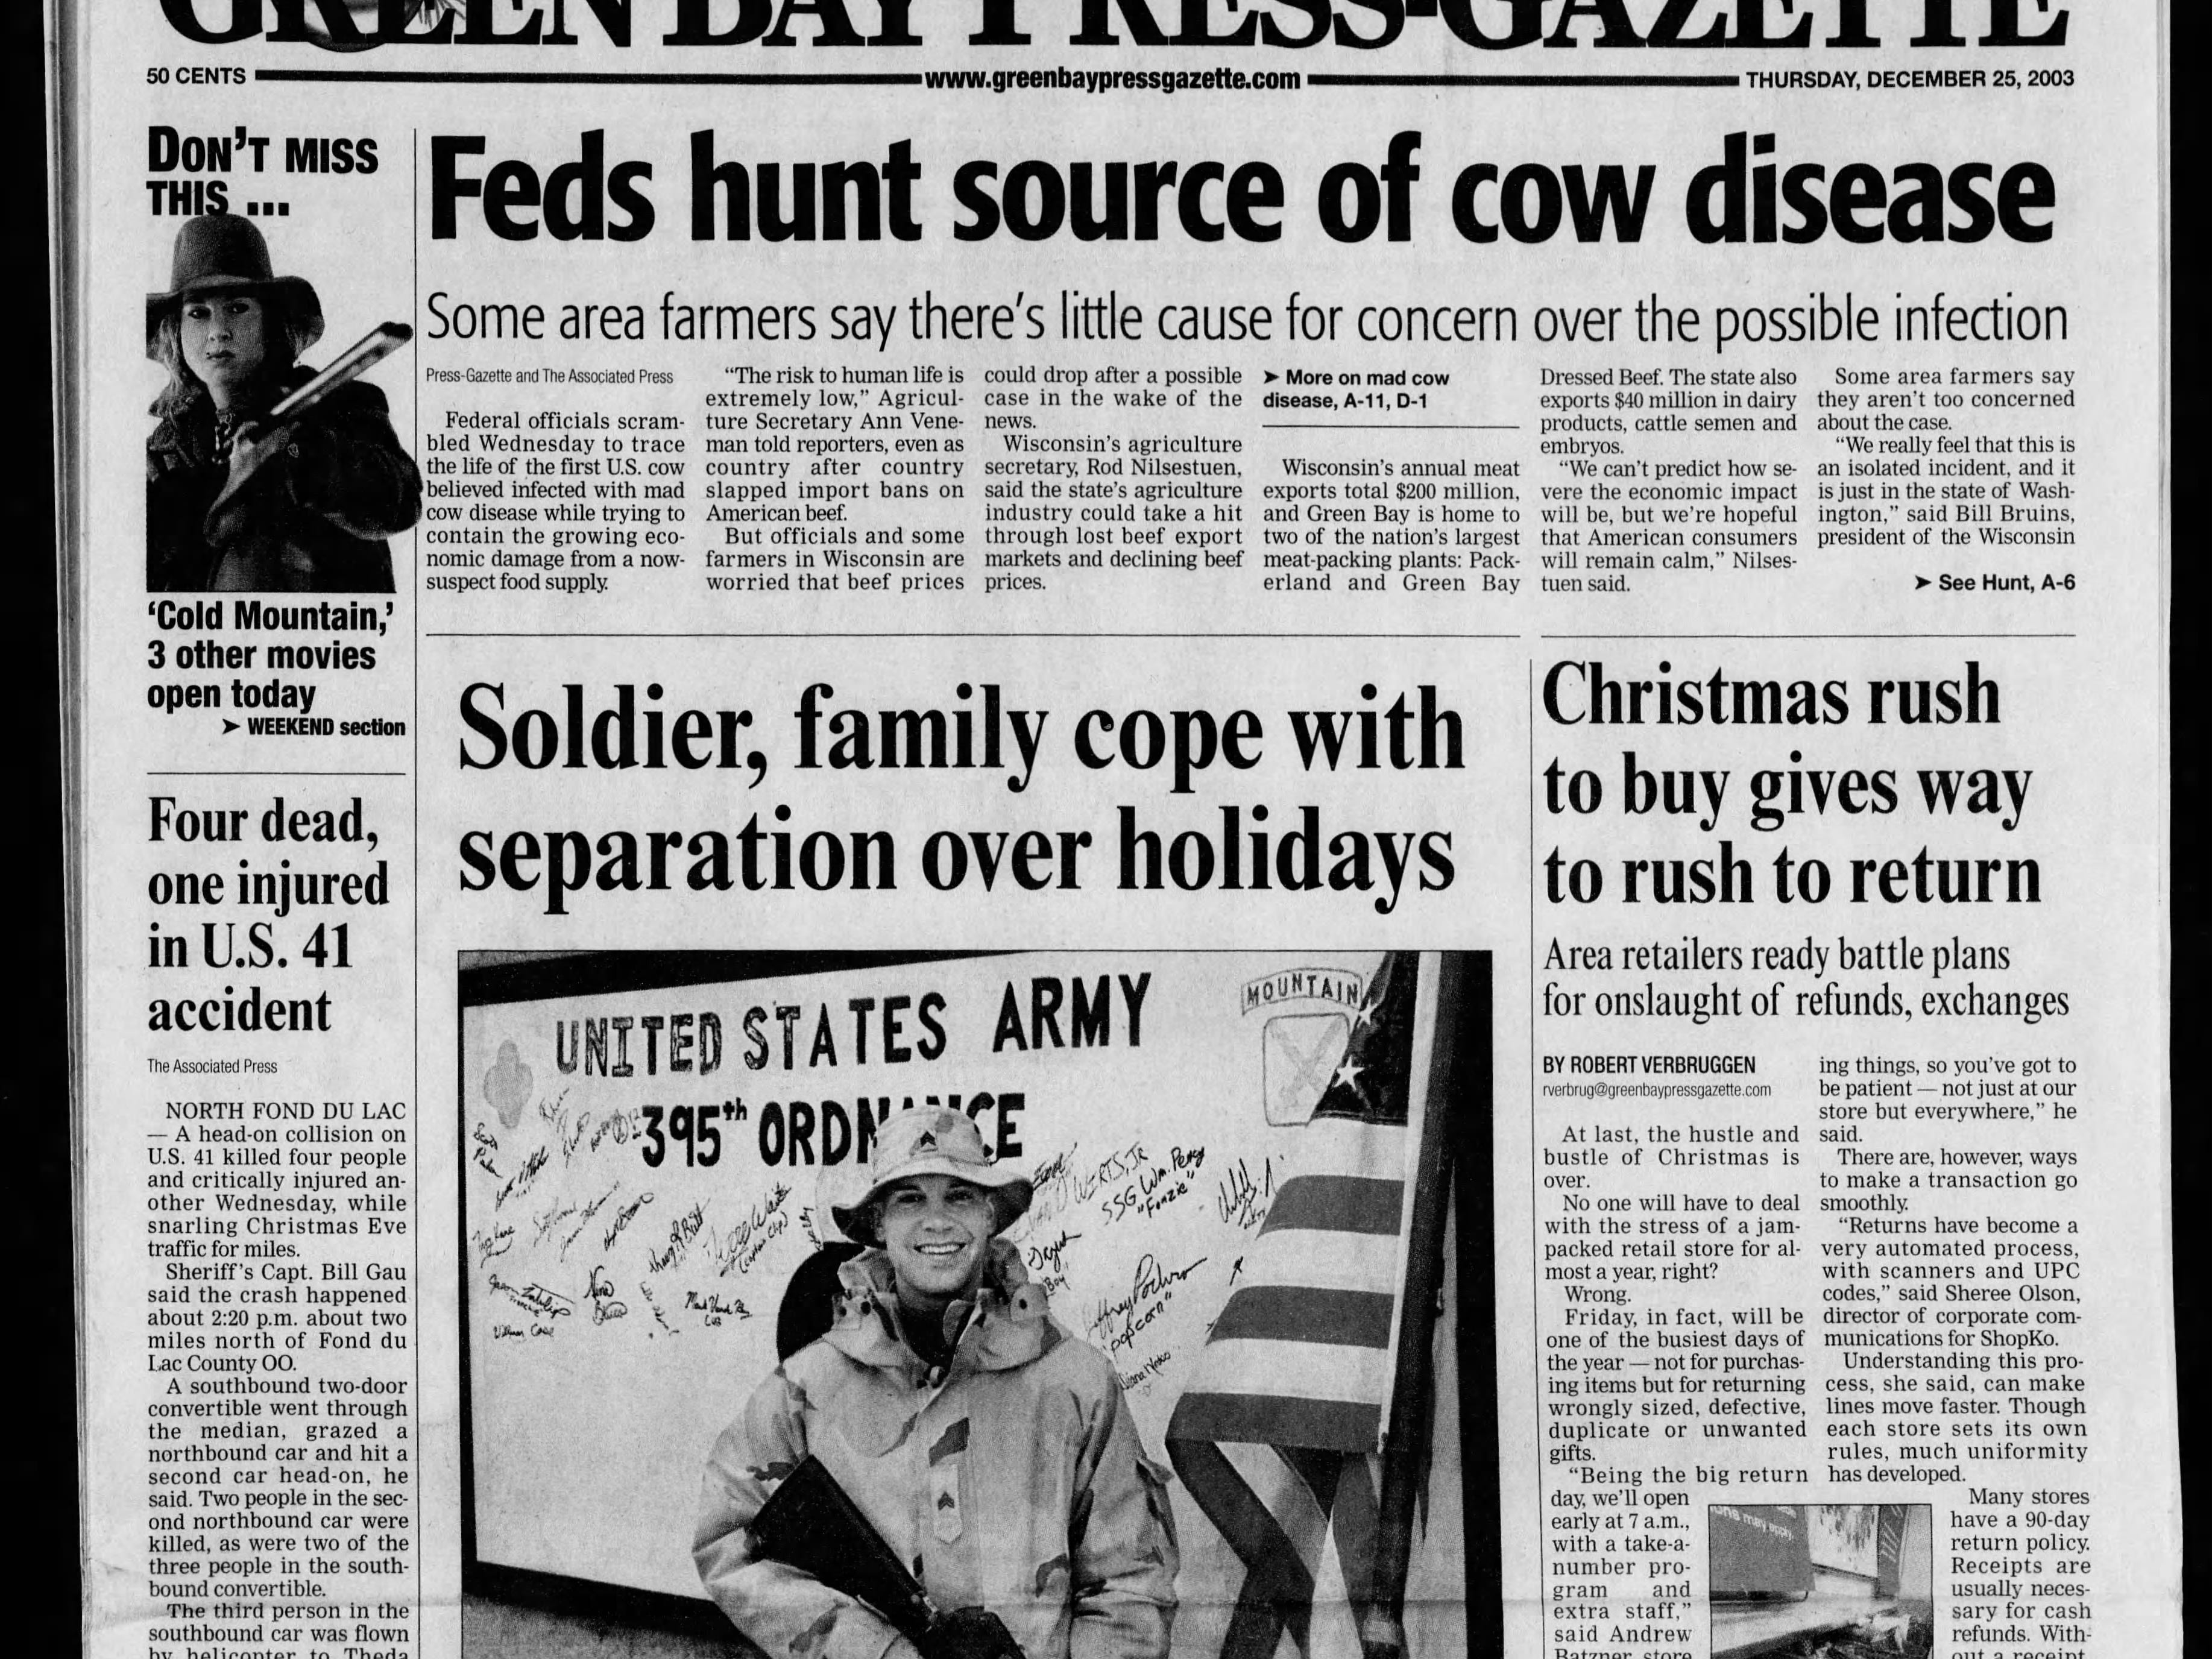 Today in History: Dec. 25, 2003